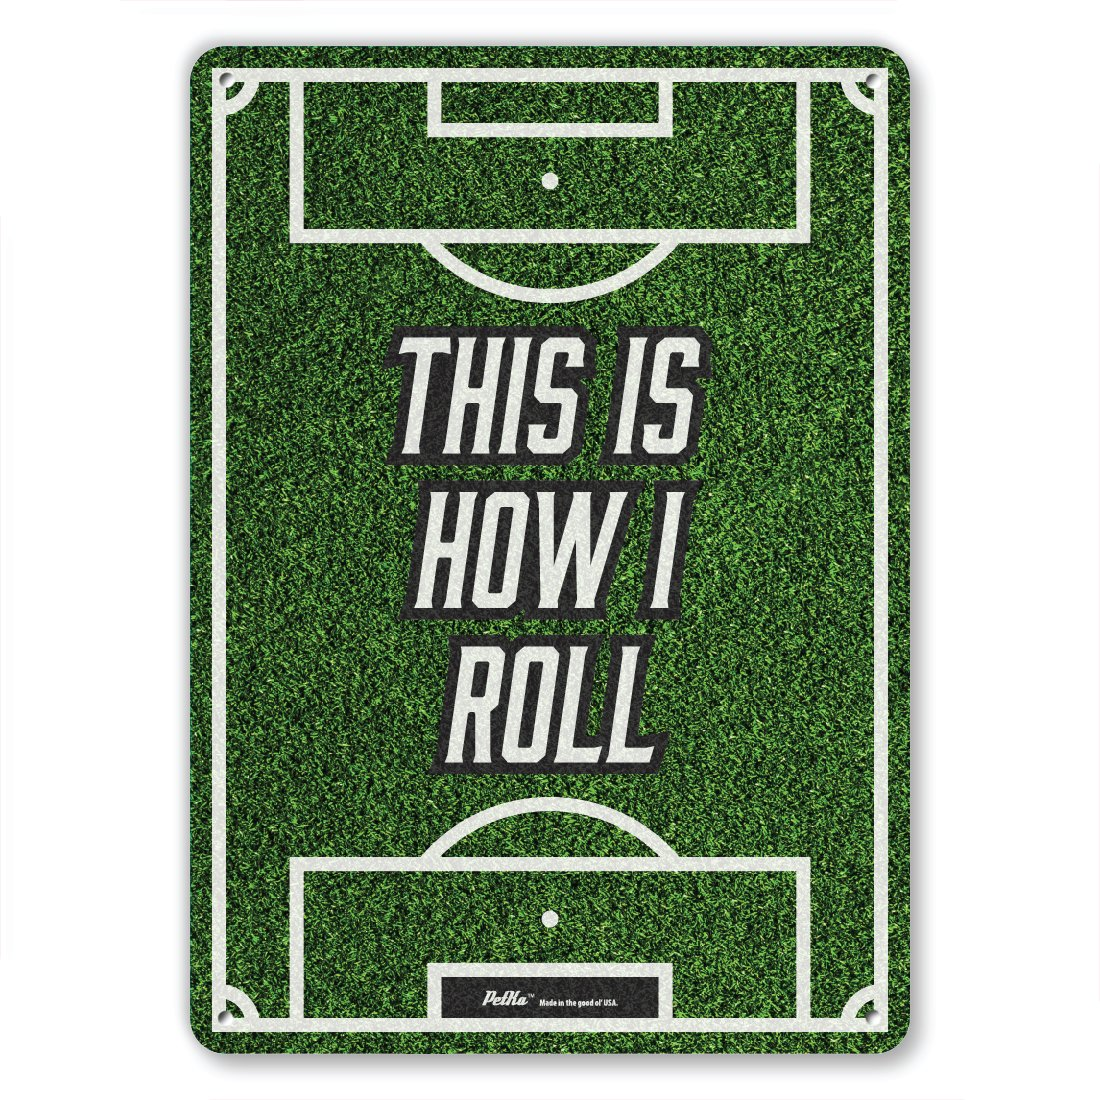 White//Black Text on Soccer Field Background PetKa Signs and Graphics PKSC-0090-NA/_10x14This is how I roll Aluminum Sign 10 x 14